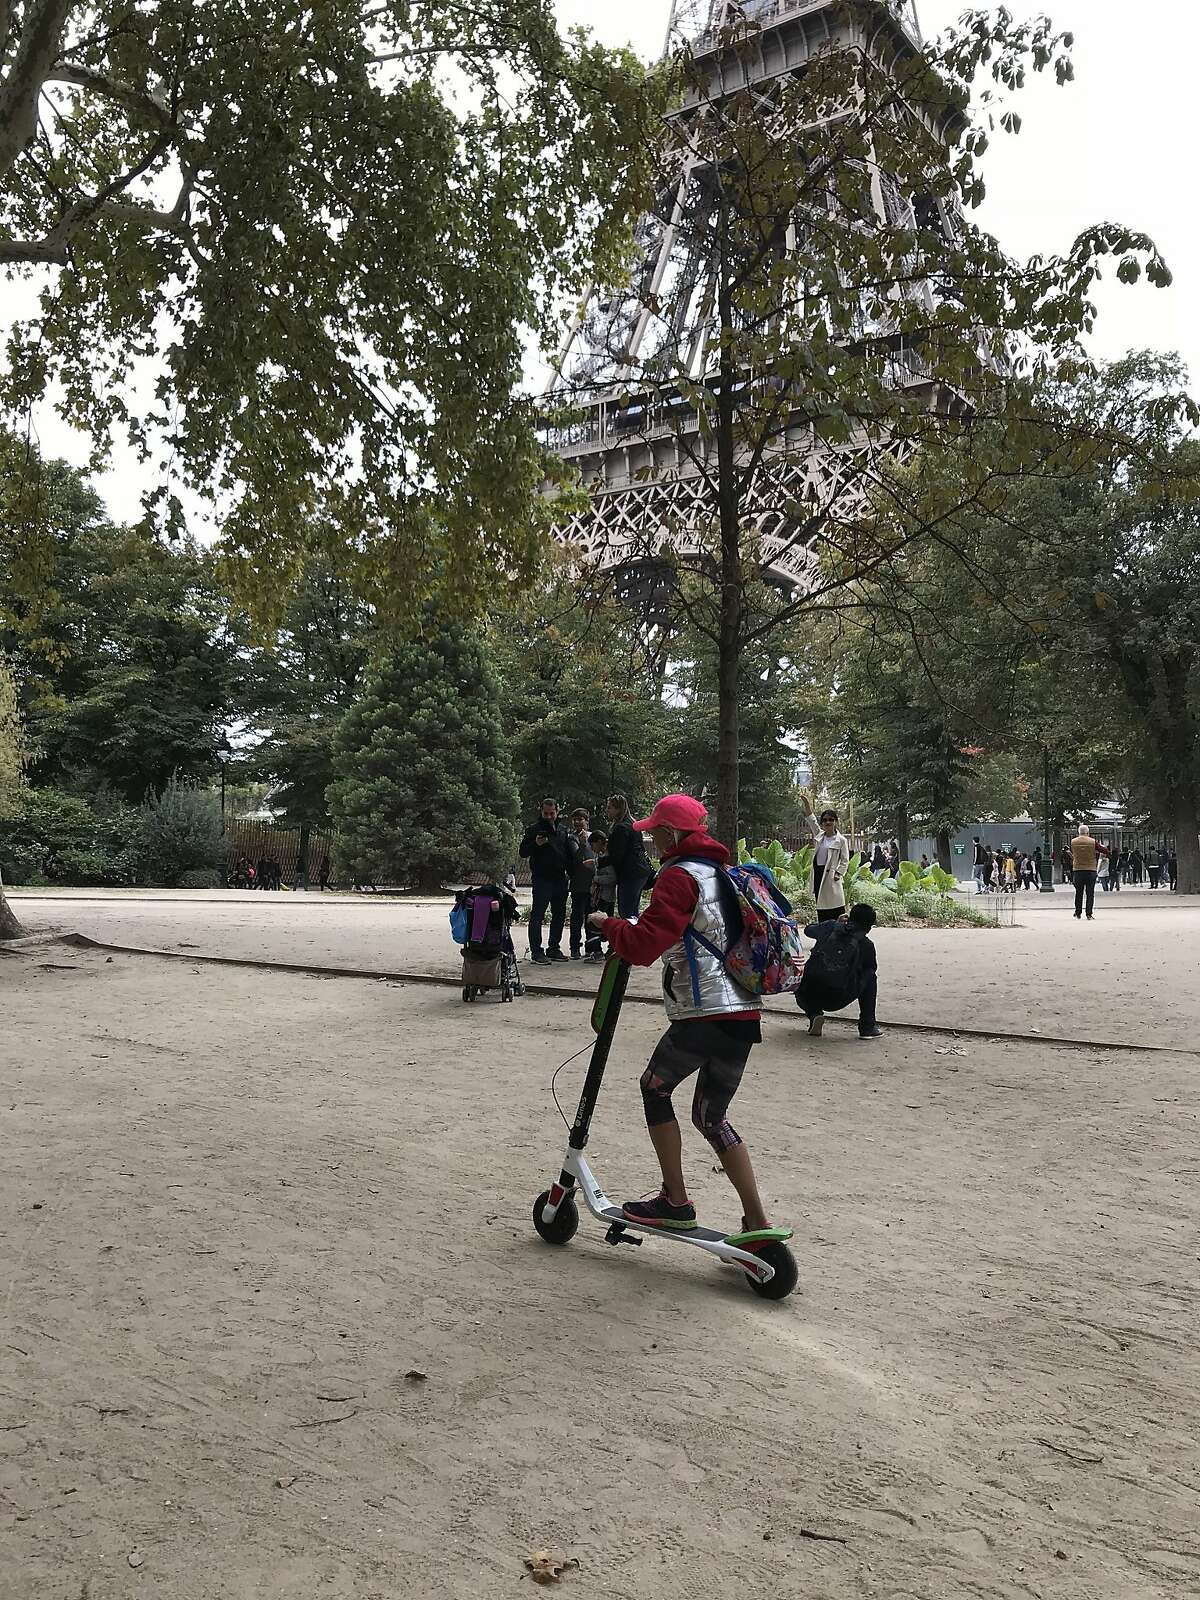 British tourist Sarah Westley rides a Lime scooter past the Eiffel Tower.